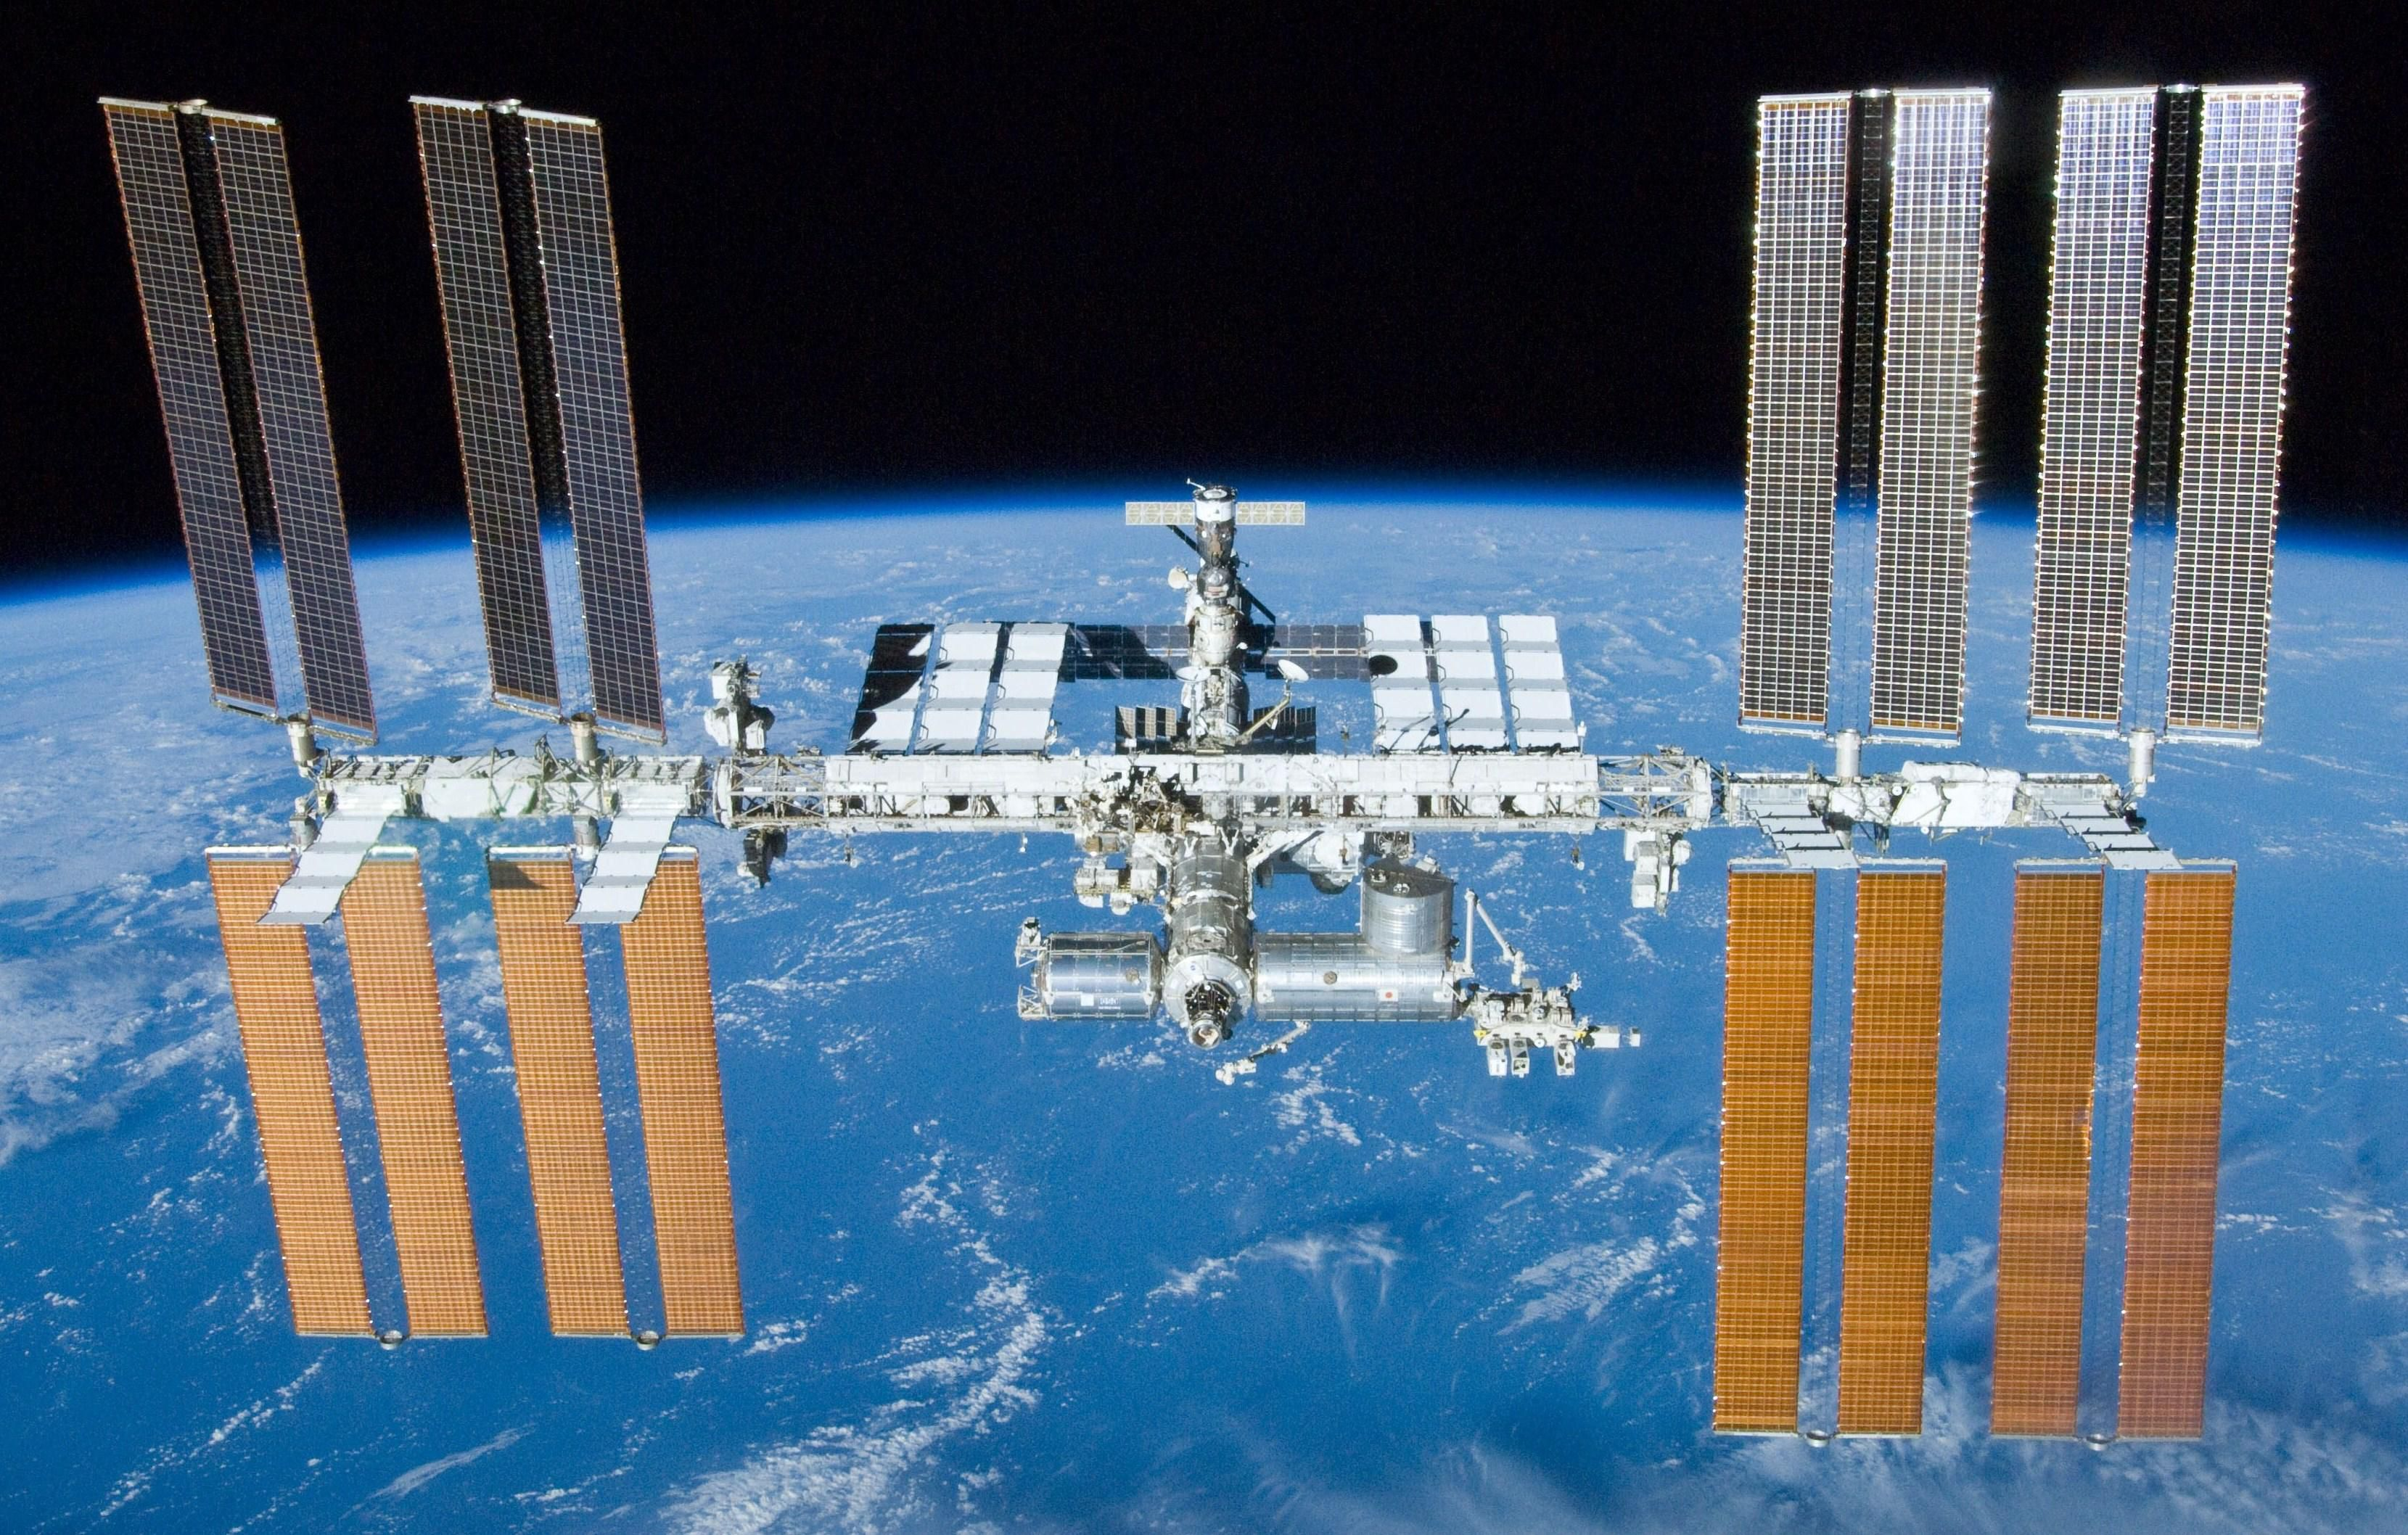 The International Space Station could soon become humanity's next hottest tourist destination.